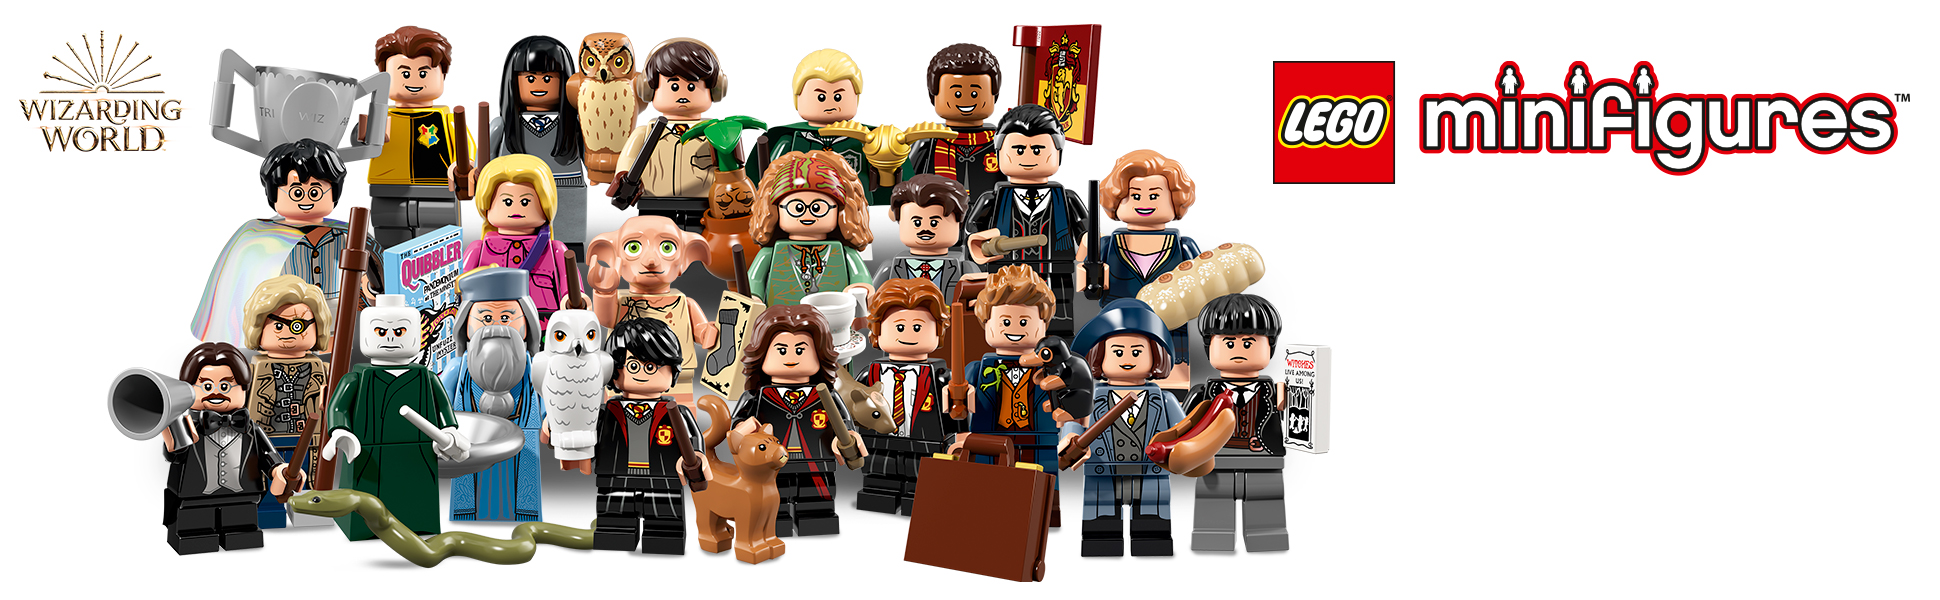 LEGO Harry Potter minifigures stocking filler christmas